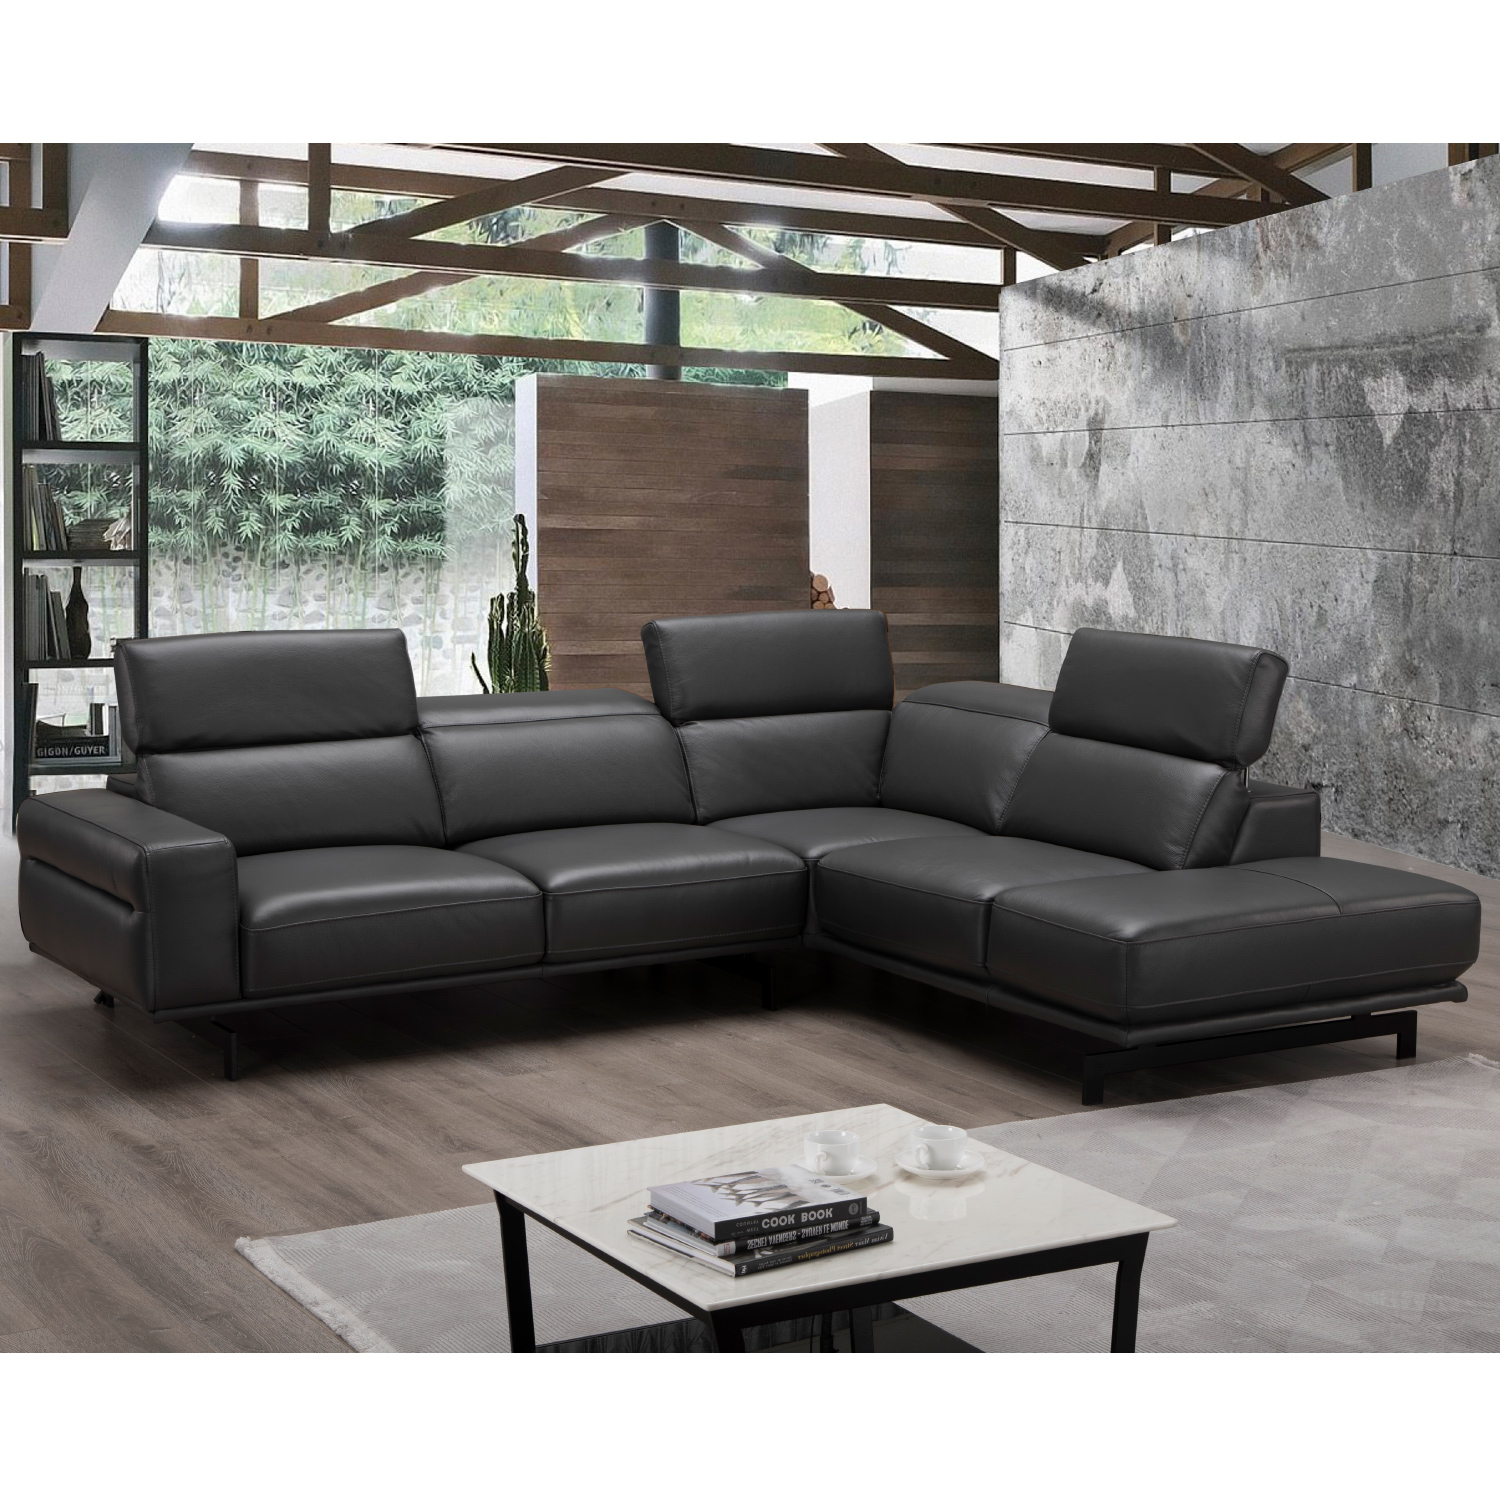 Davenport Sectional Sofa W Right Facing Chaise In Slate Grey Top Grain Leather By J And M Furniture